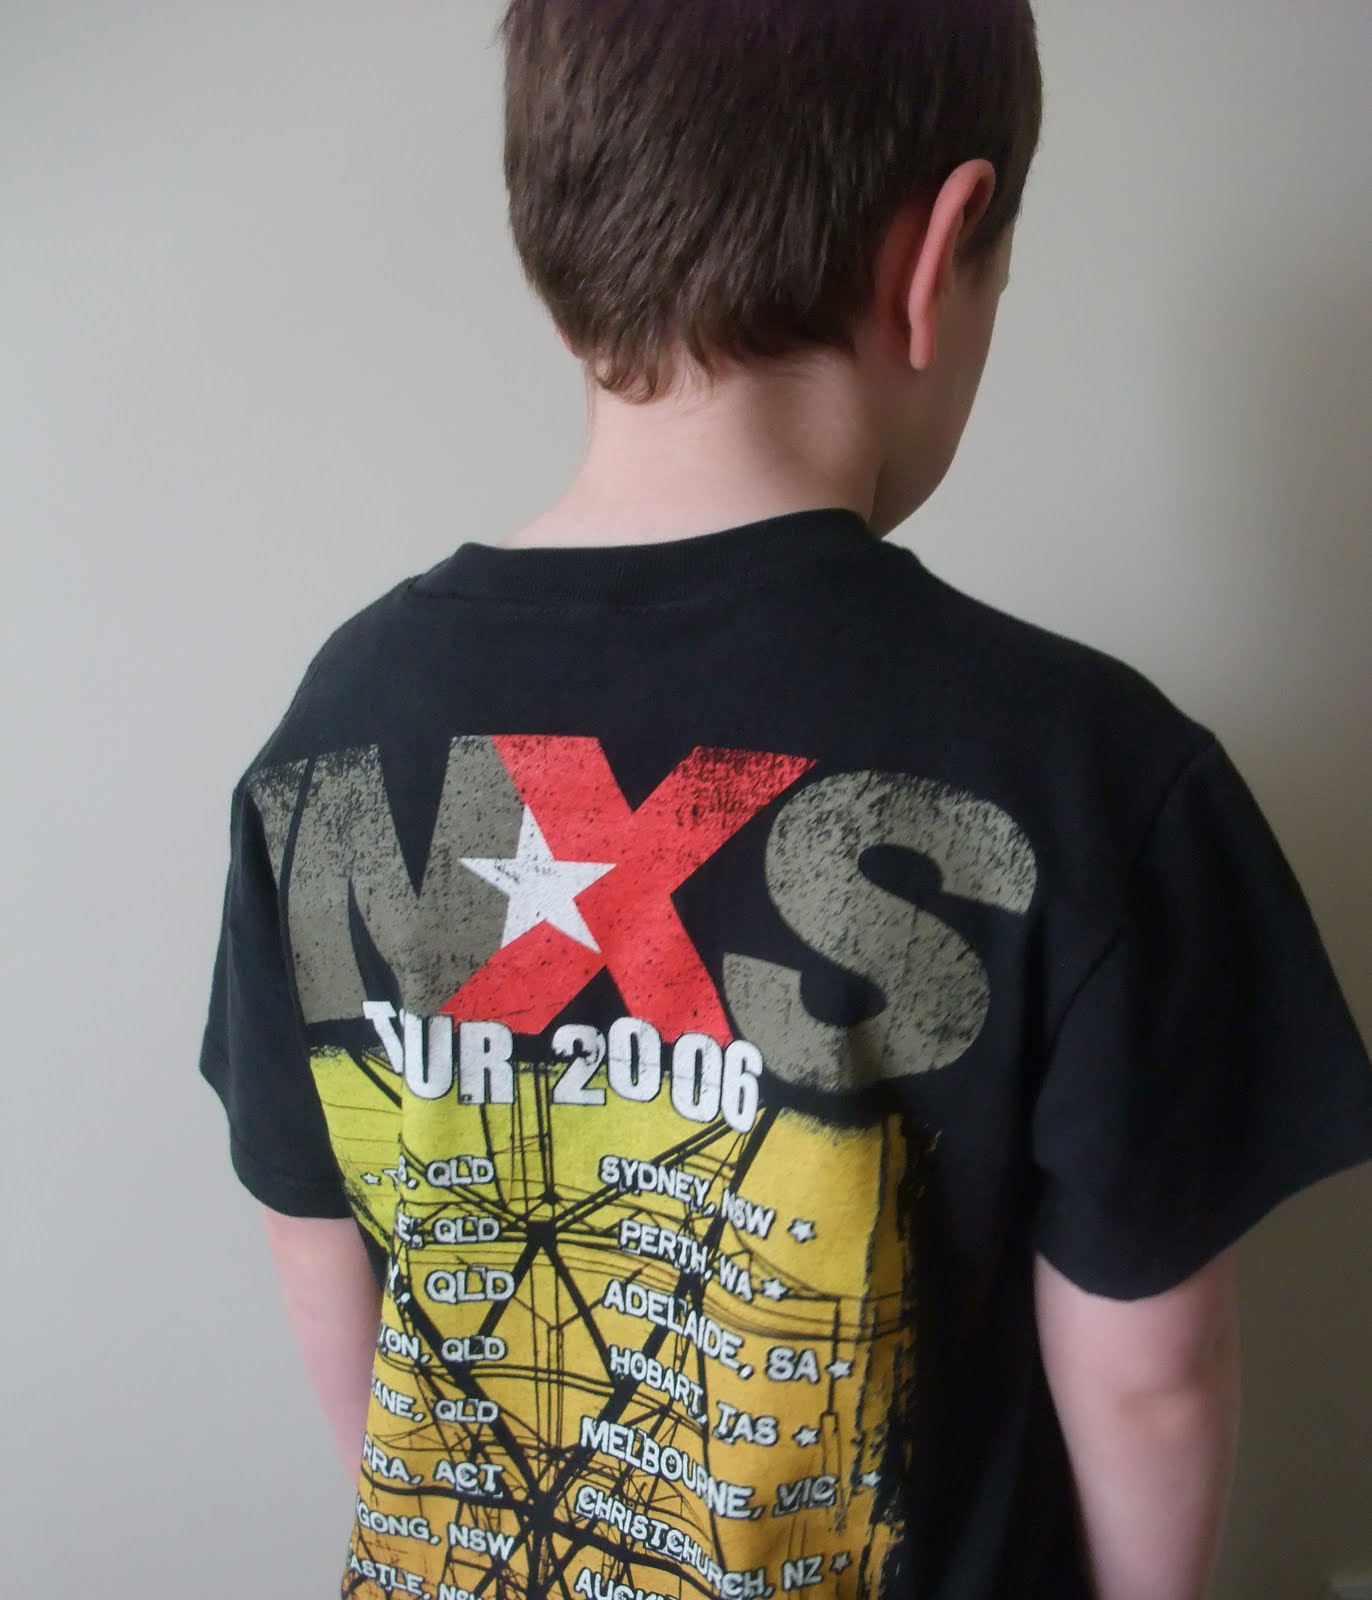 Other countries name davidson by shirts from t harley retail stores